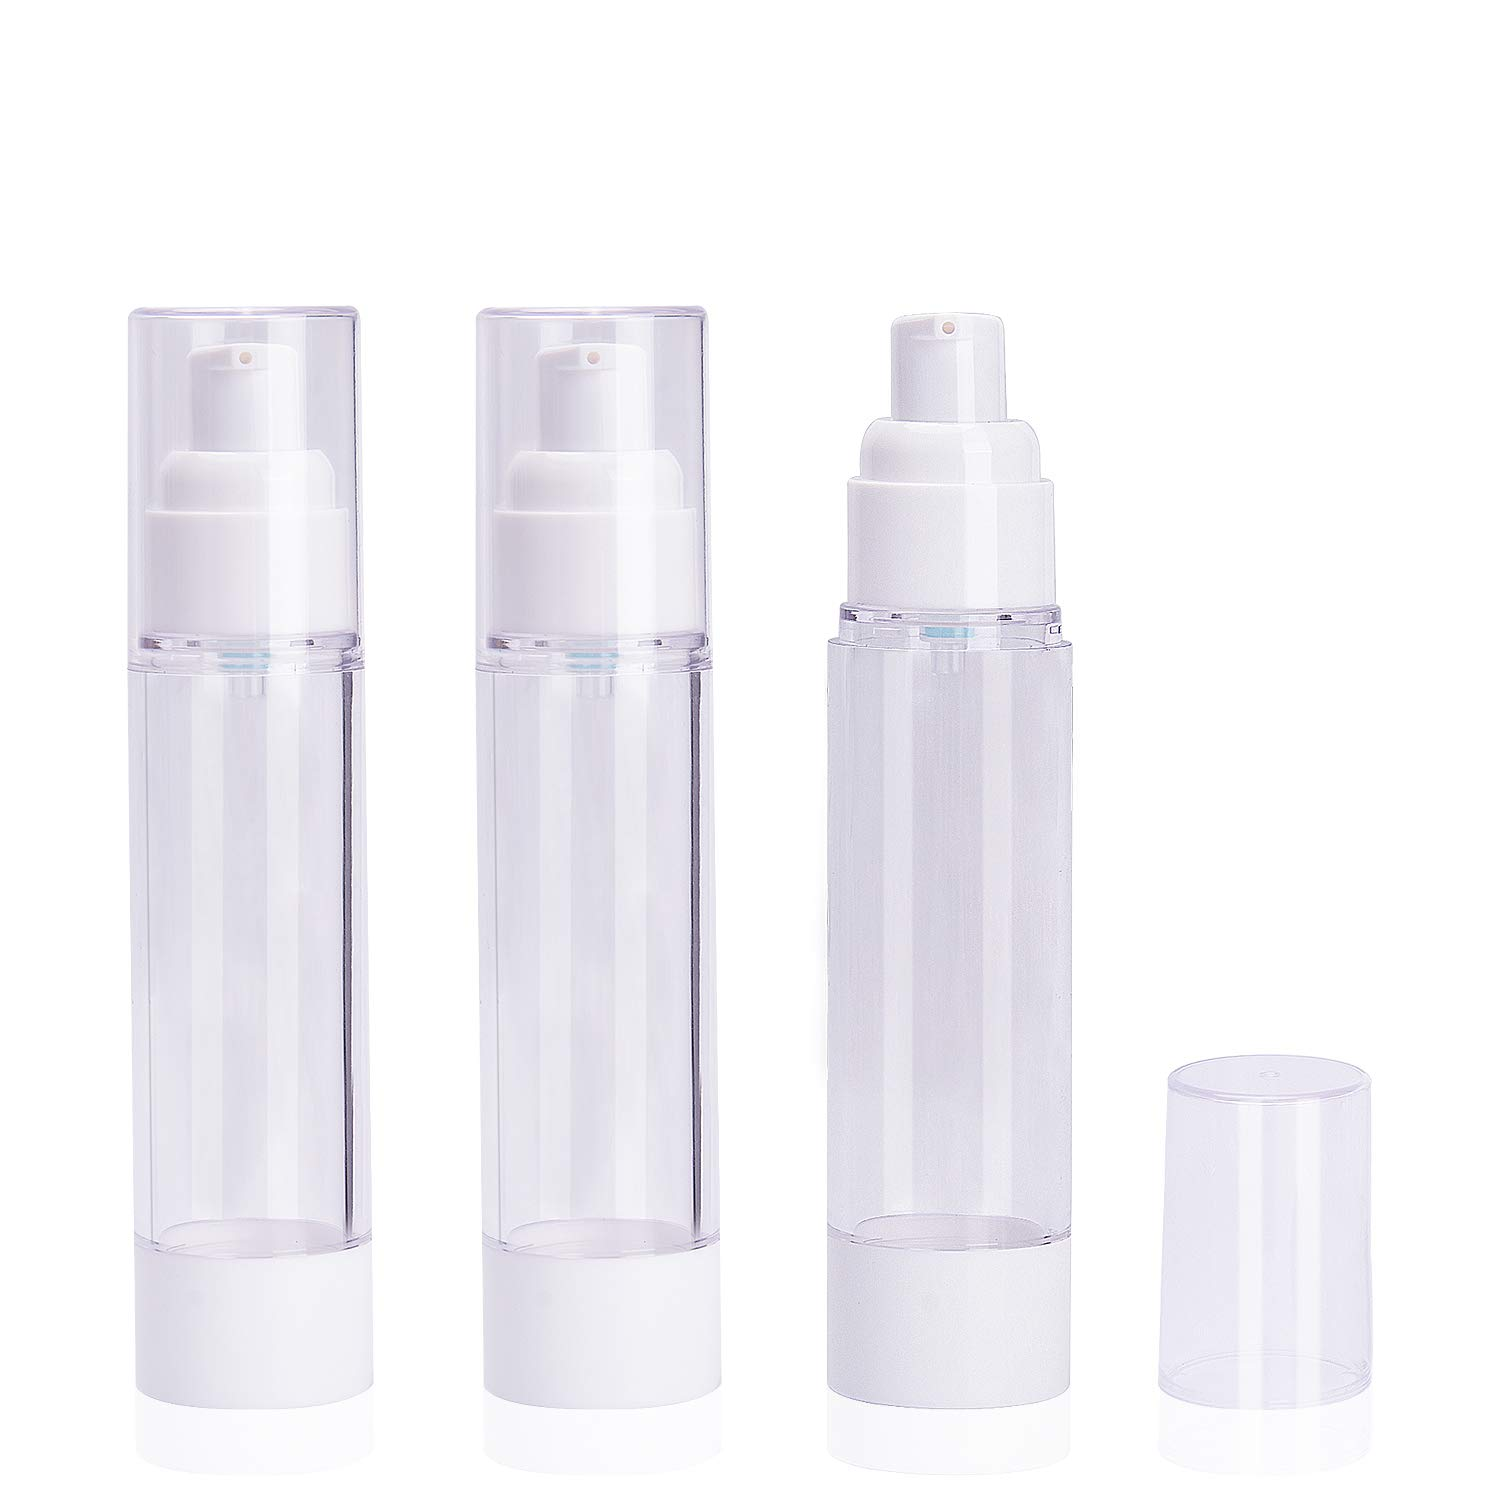 3 Pack 50ml 1.7oz Airless Vacuum Pump Toiletry Travel Bottles, Airtight Makeup Cosmetics Refillable Plastic Dispenser Containers, Leak Proof, TSA Approved, Ideal for Cream Foundation Gel Moisturizers